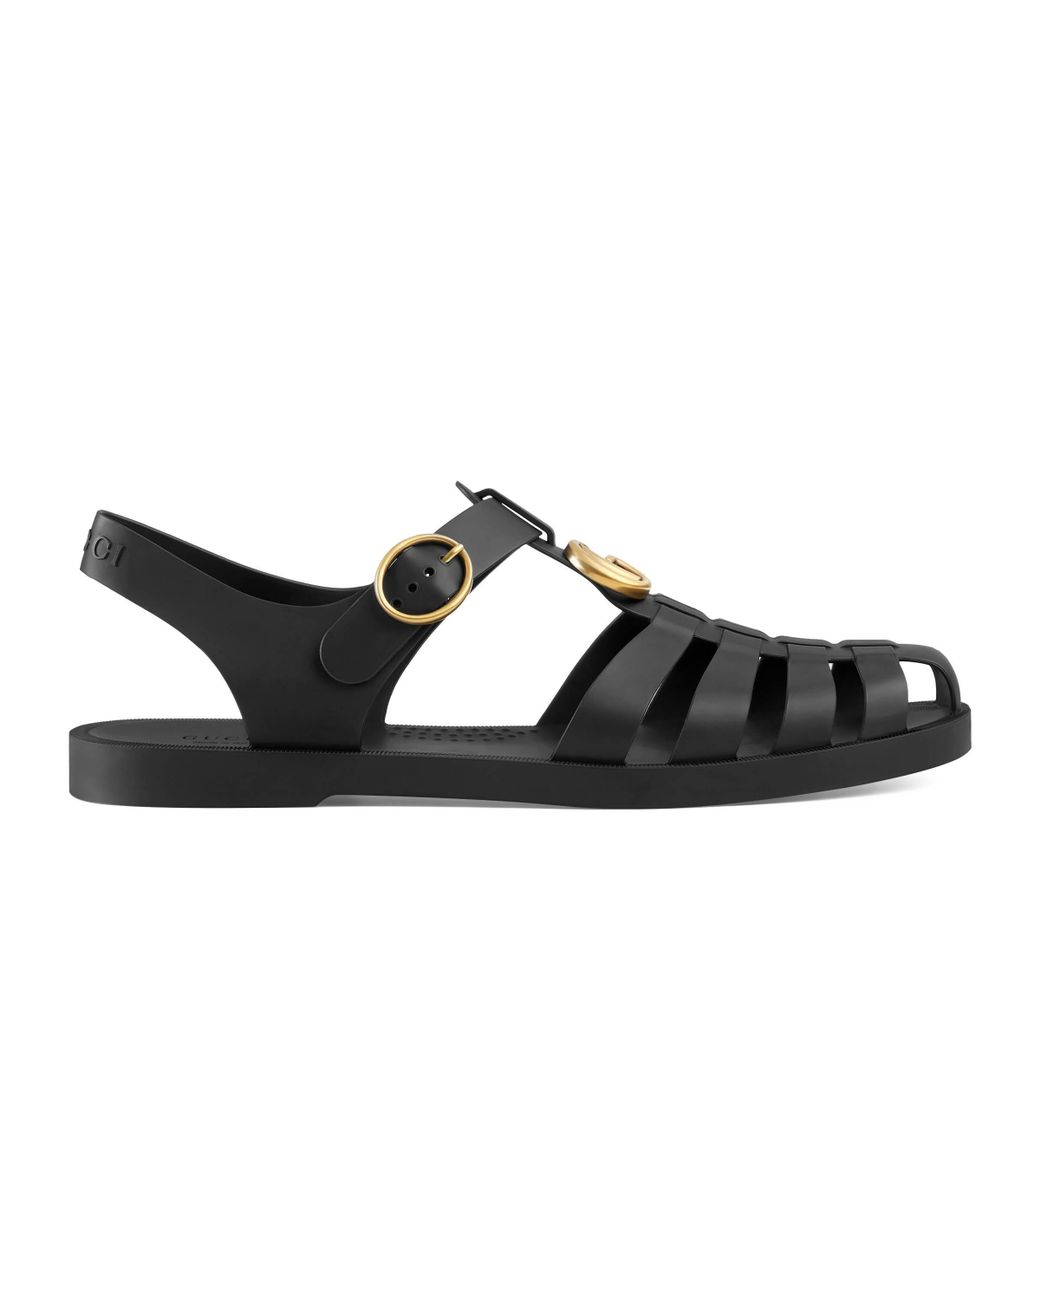 9741a88a183 Gucci Rubber Buckle Strap Sandal in Black for Men - Lyst